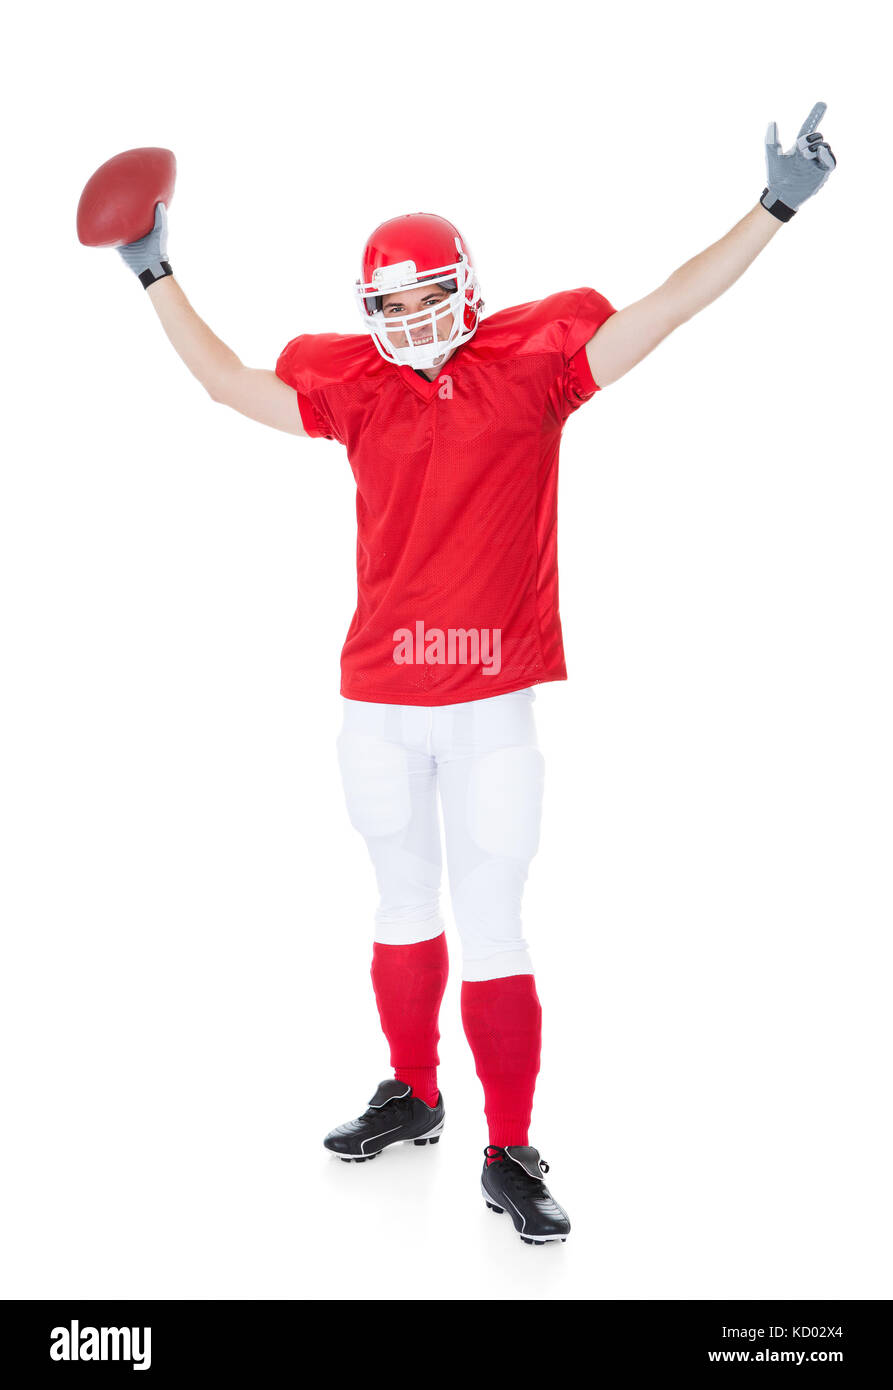 Portrait Of American Football Player On White Background - Stock Image